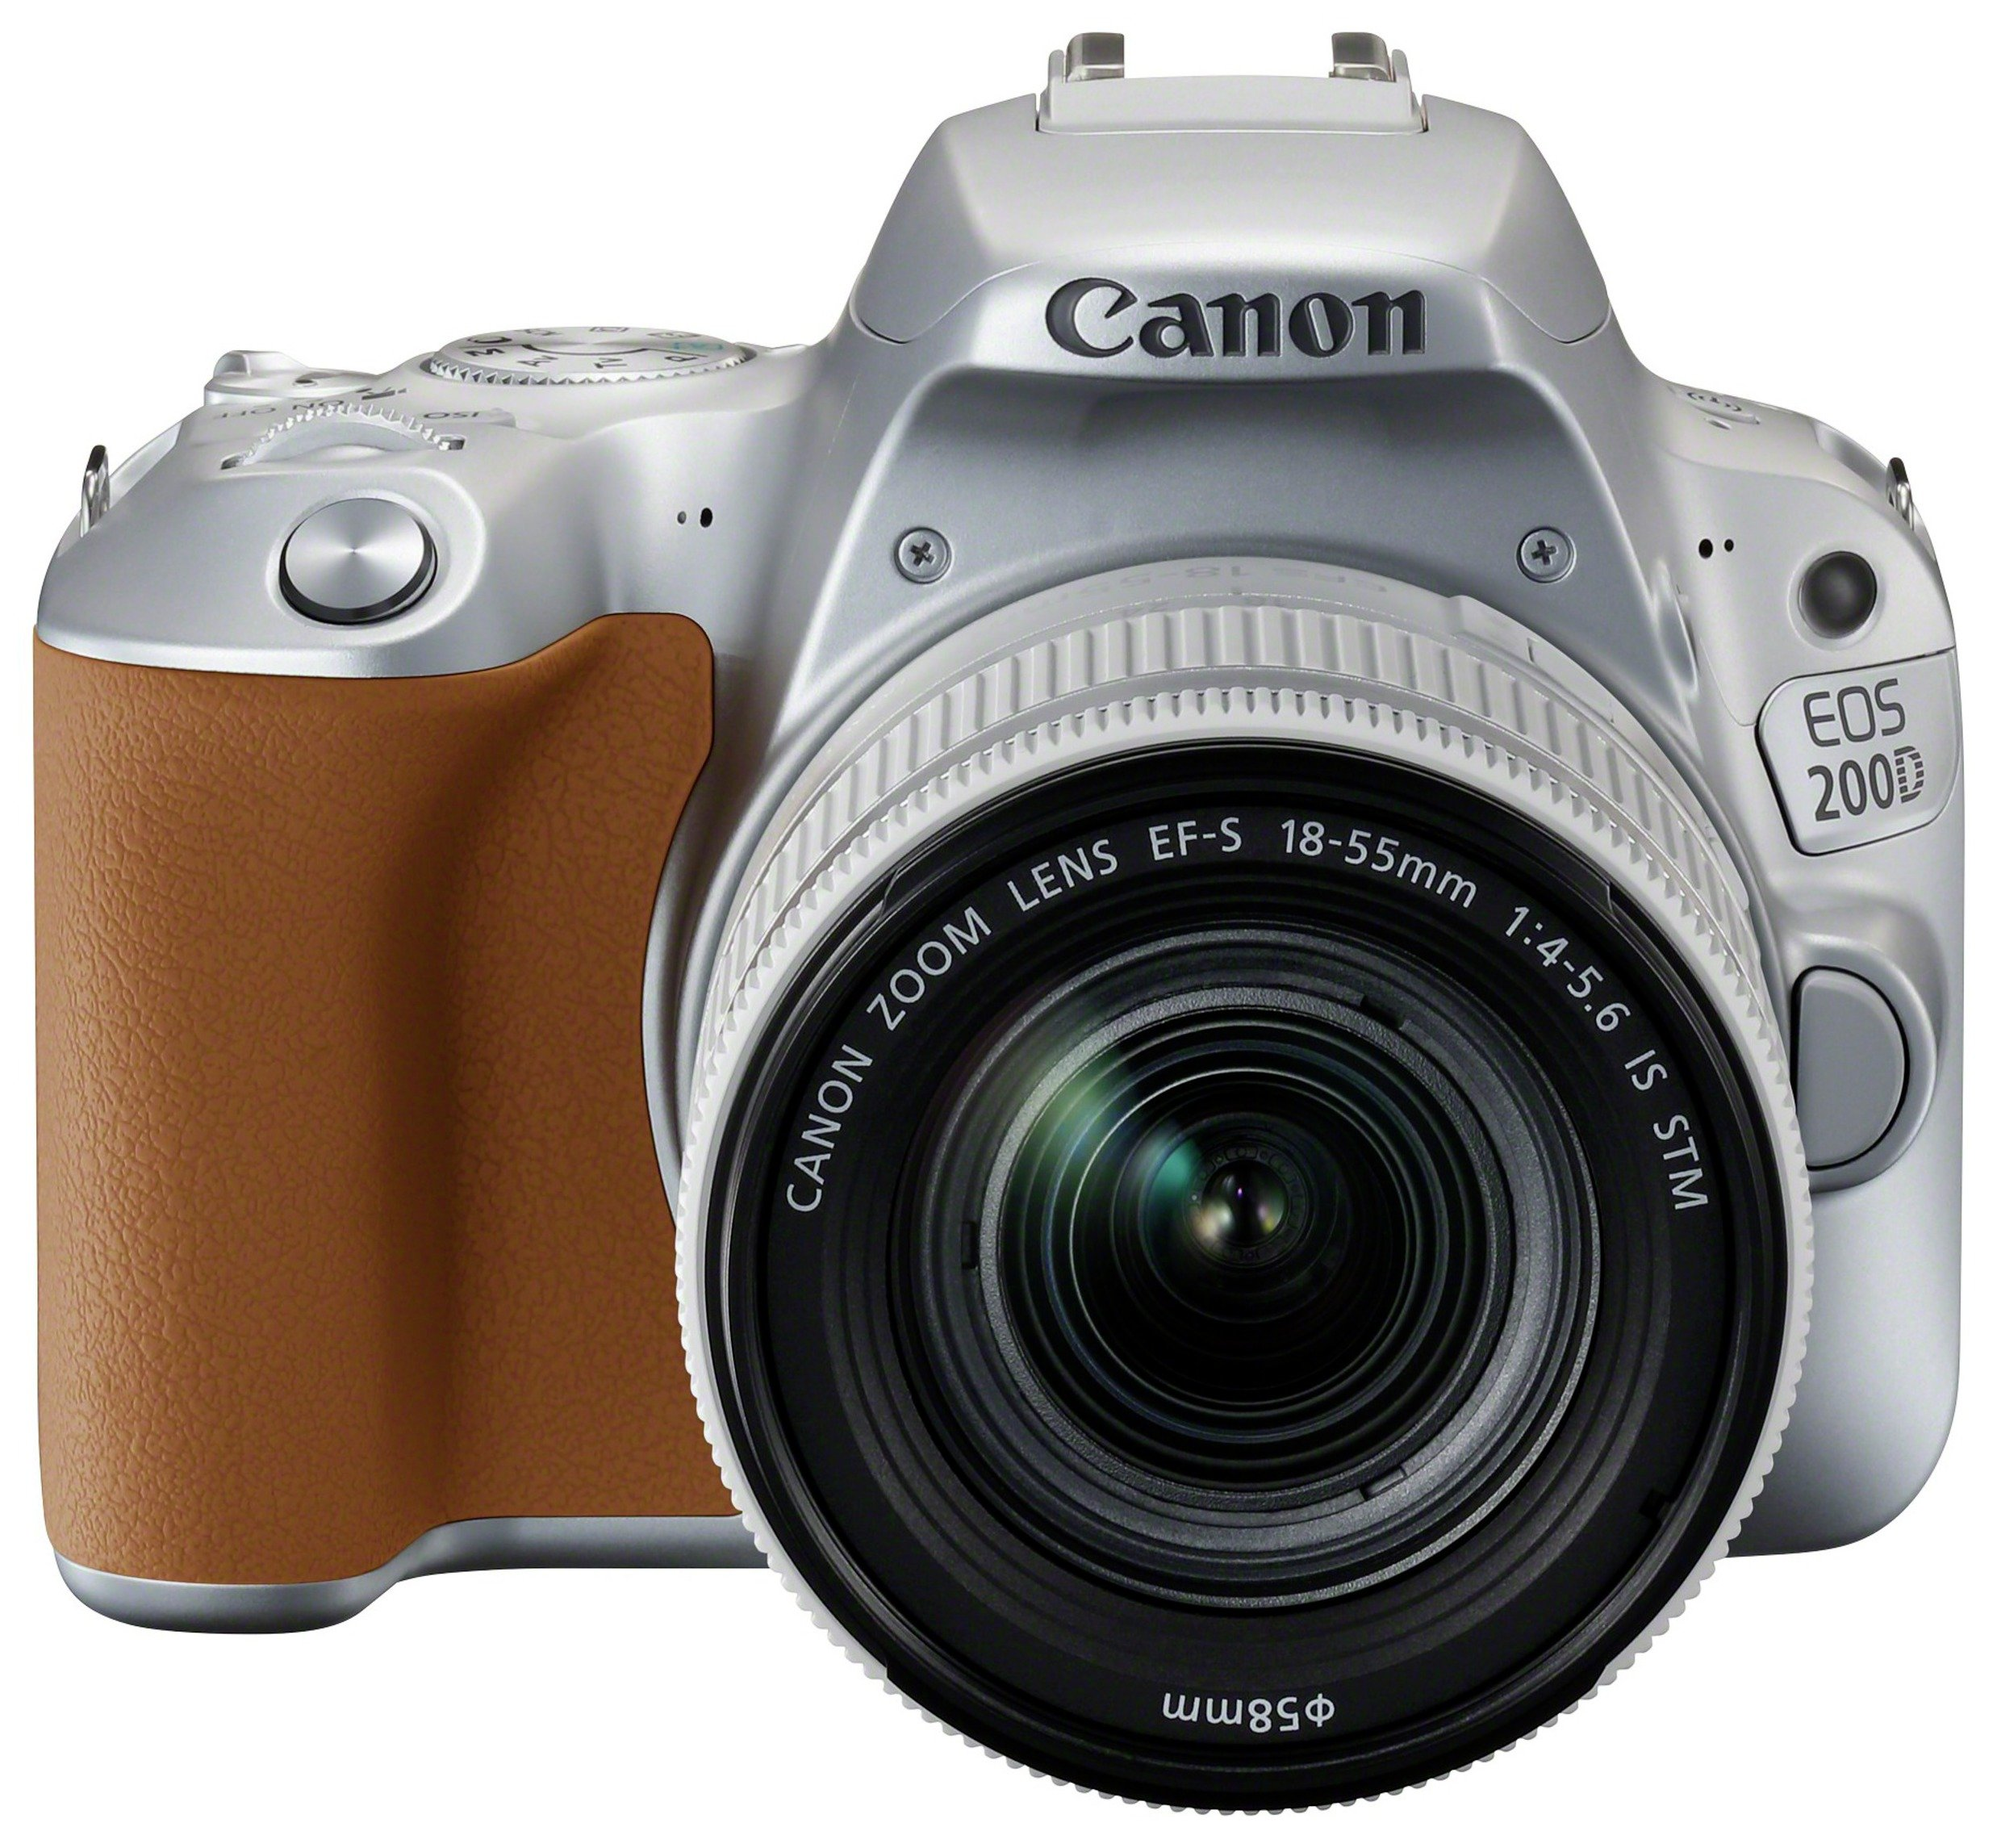 Canon EOS 200D DSLR Camera with 18 - 55mm Lens